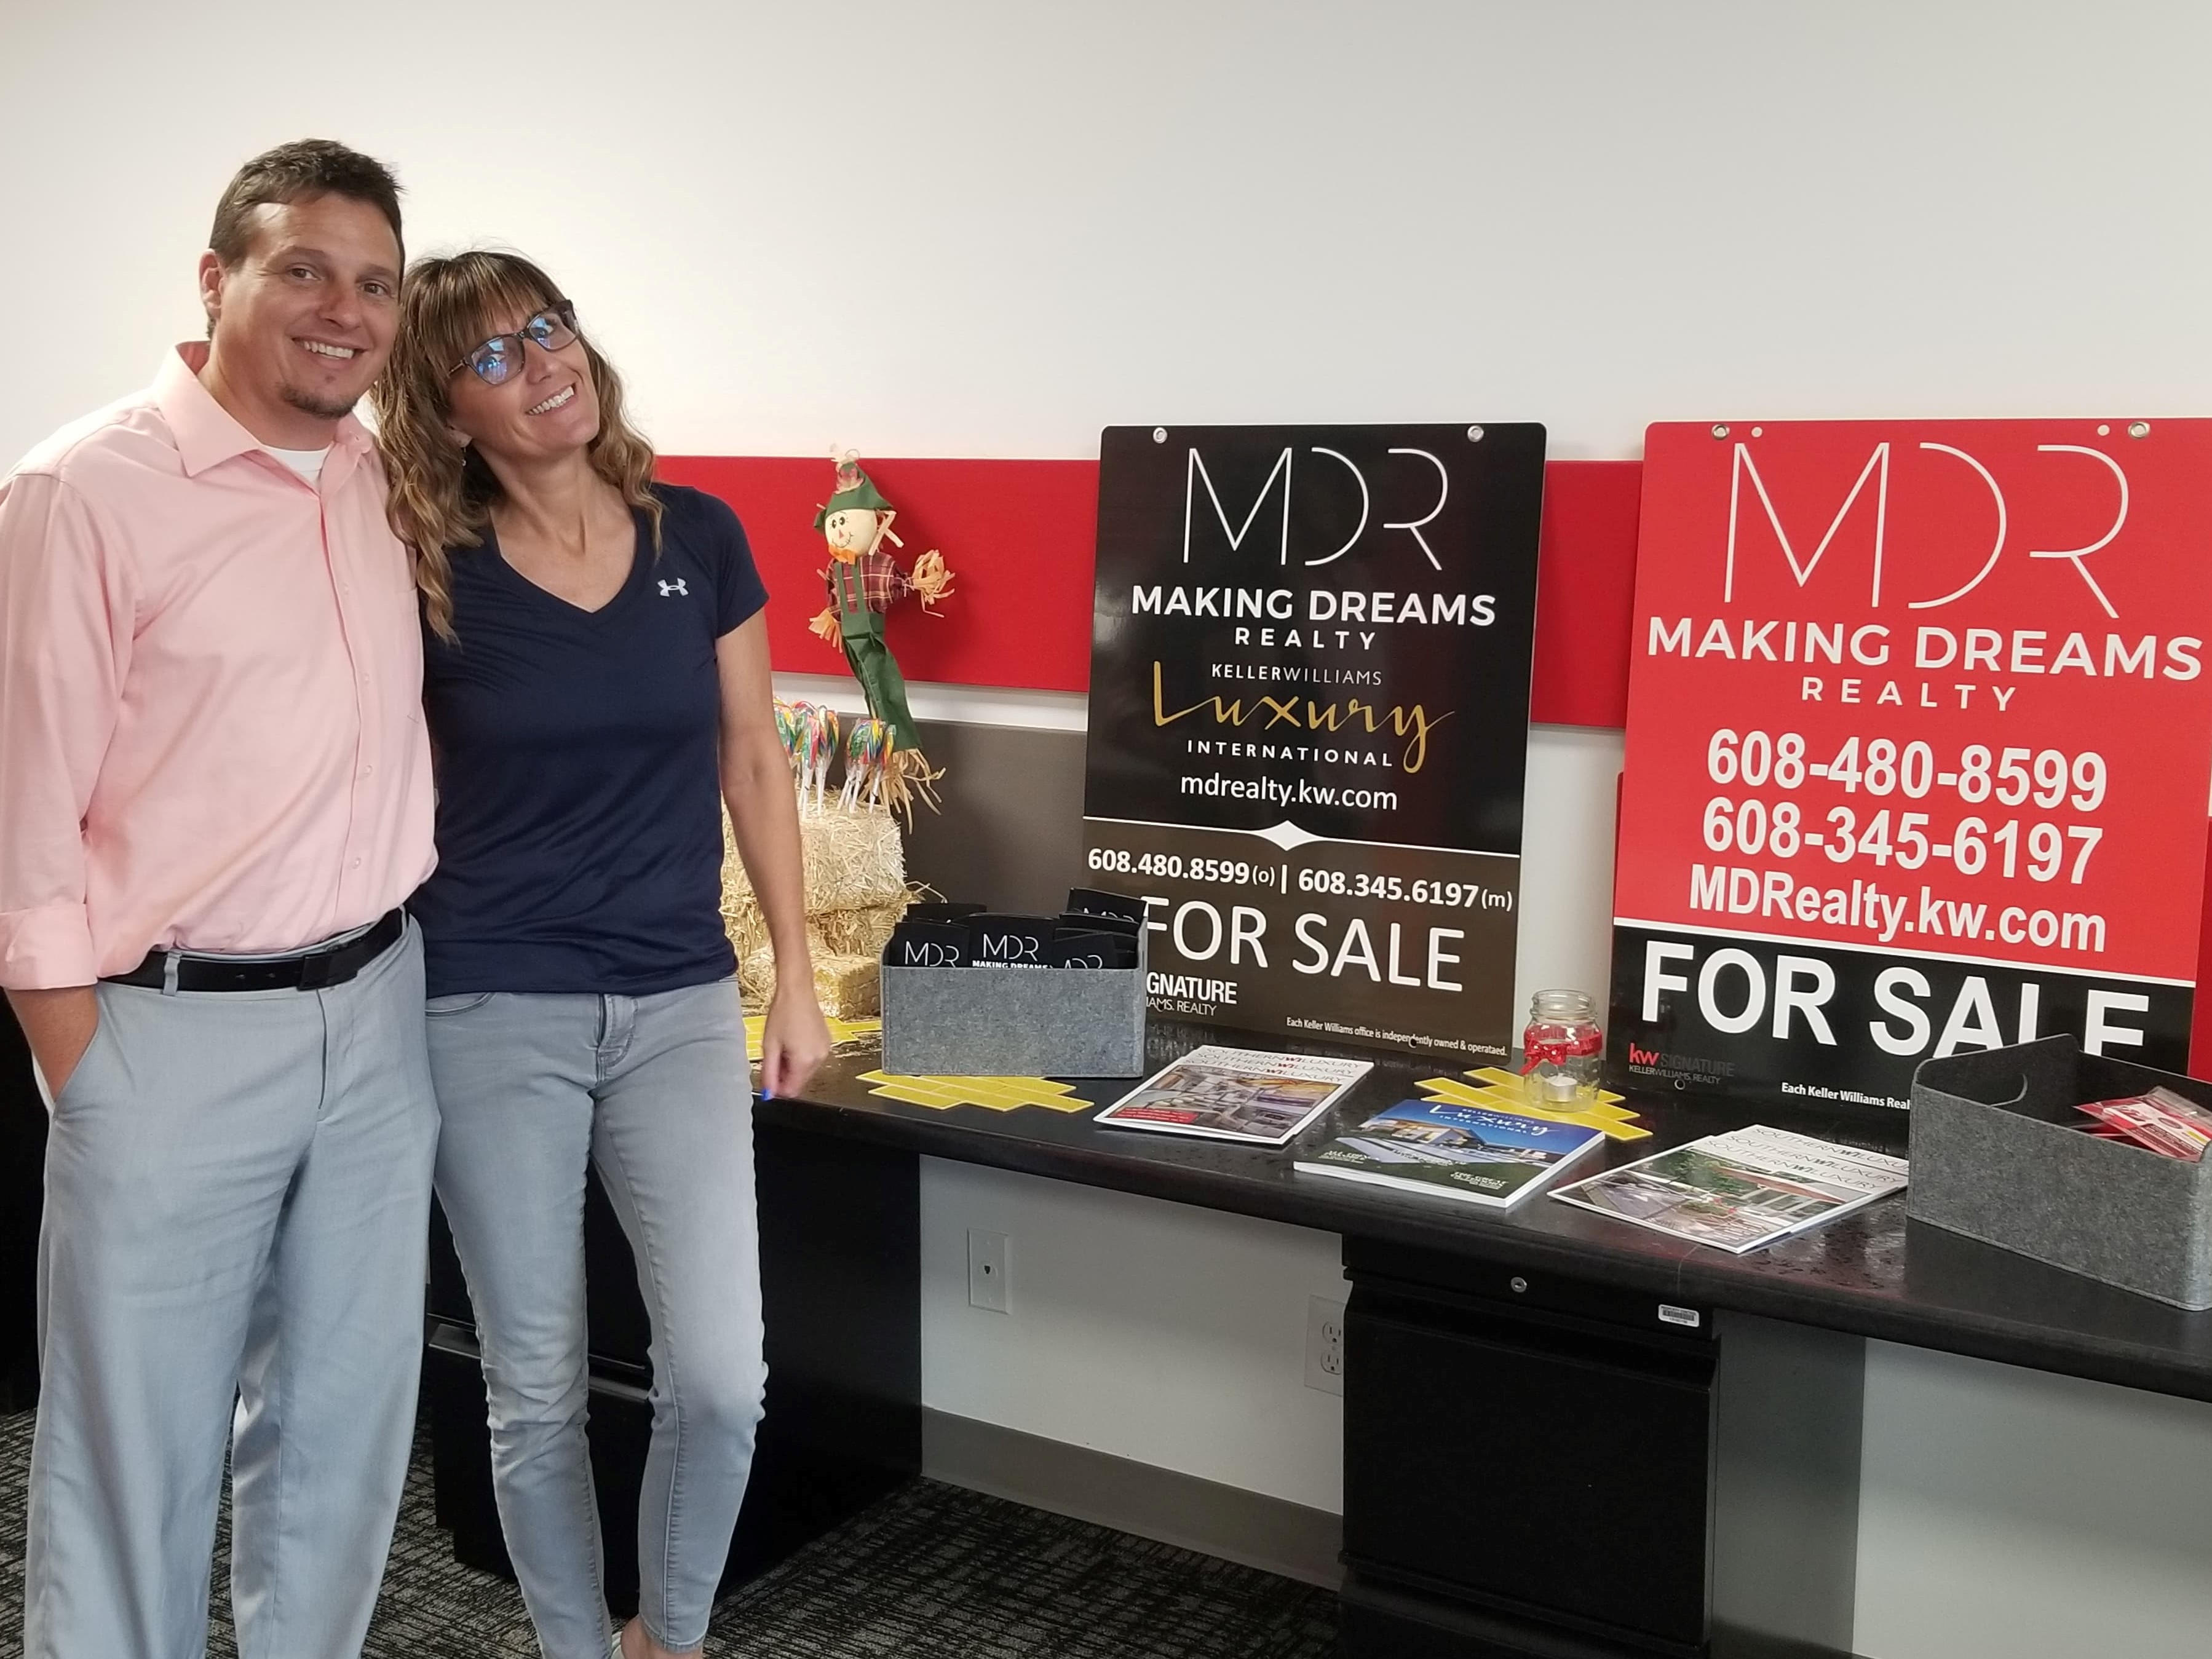 Kevin and Renee Clark, Owners MAKING DREAMS Realty